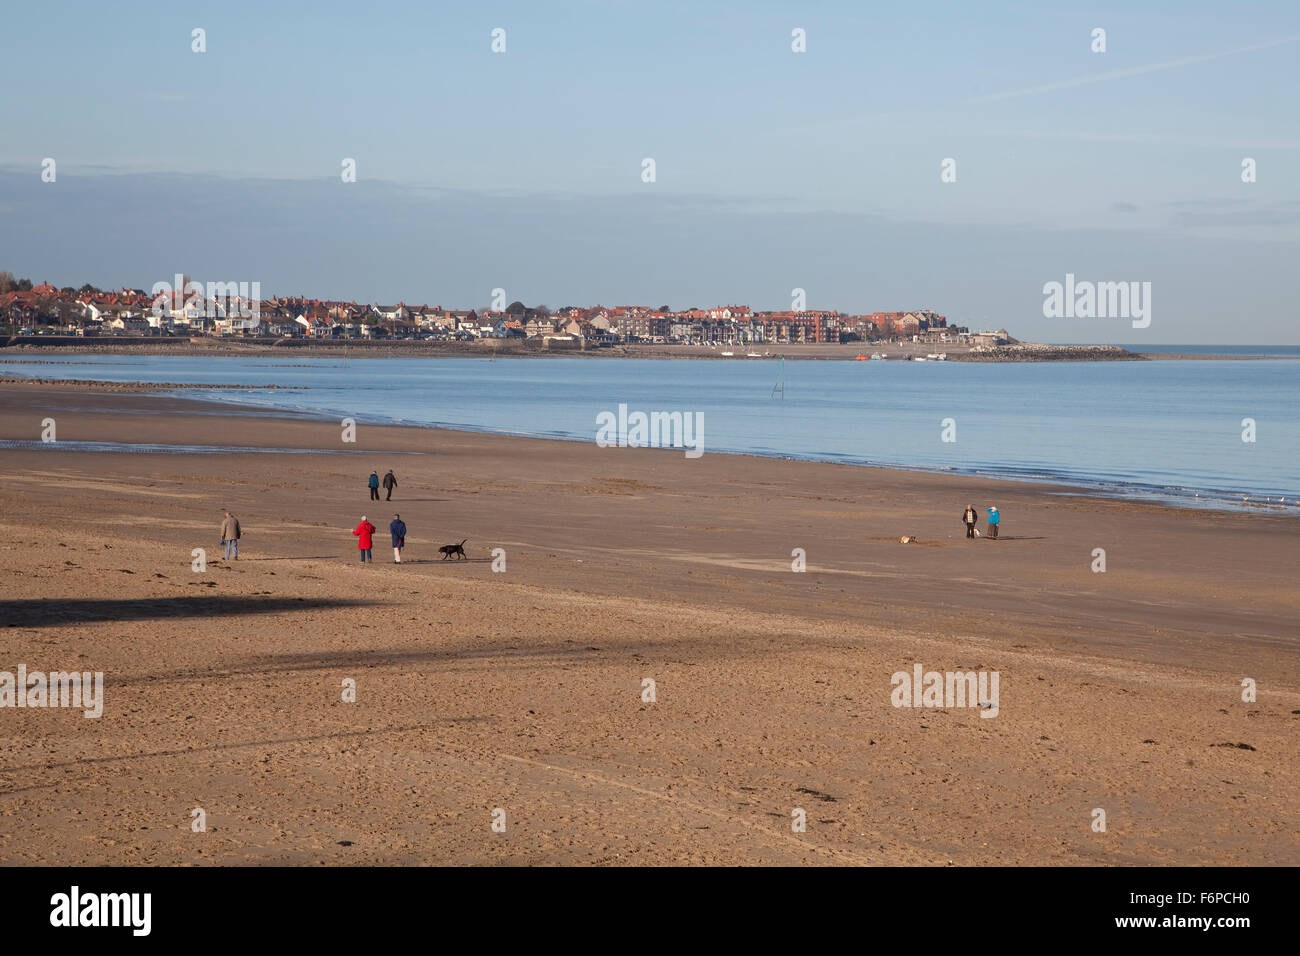 View of Rhos on Sea across the sandy beach at Colwyn Bay in North Wales - Stock Image